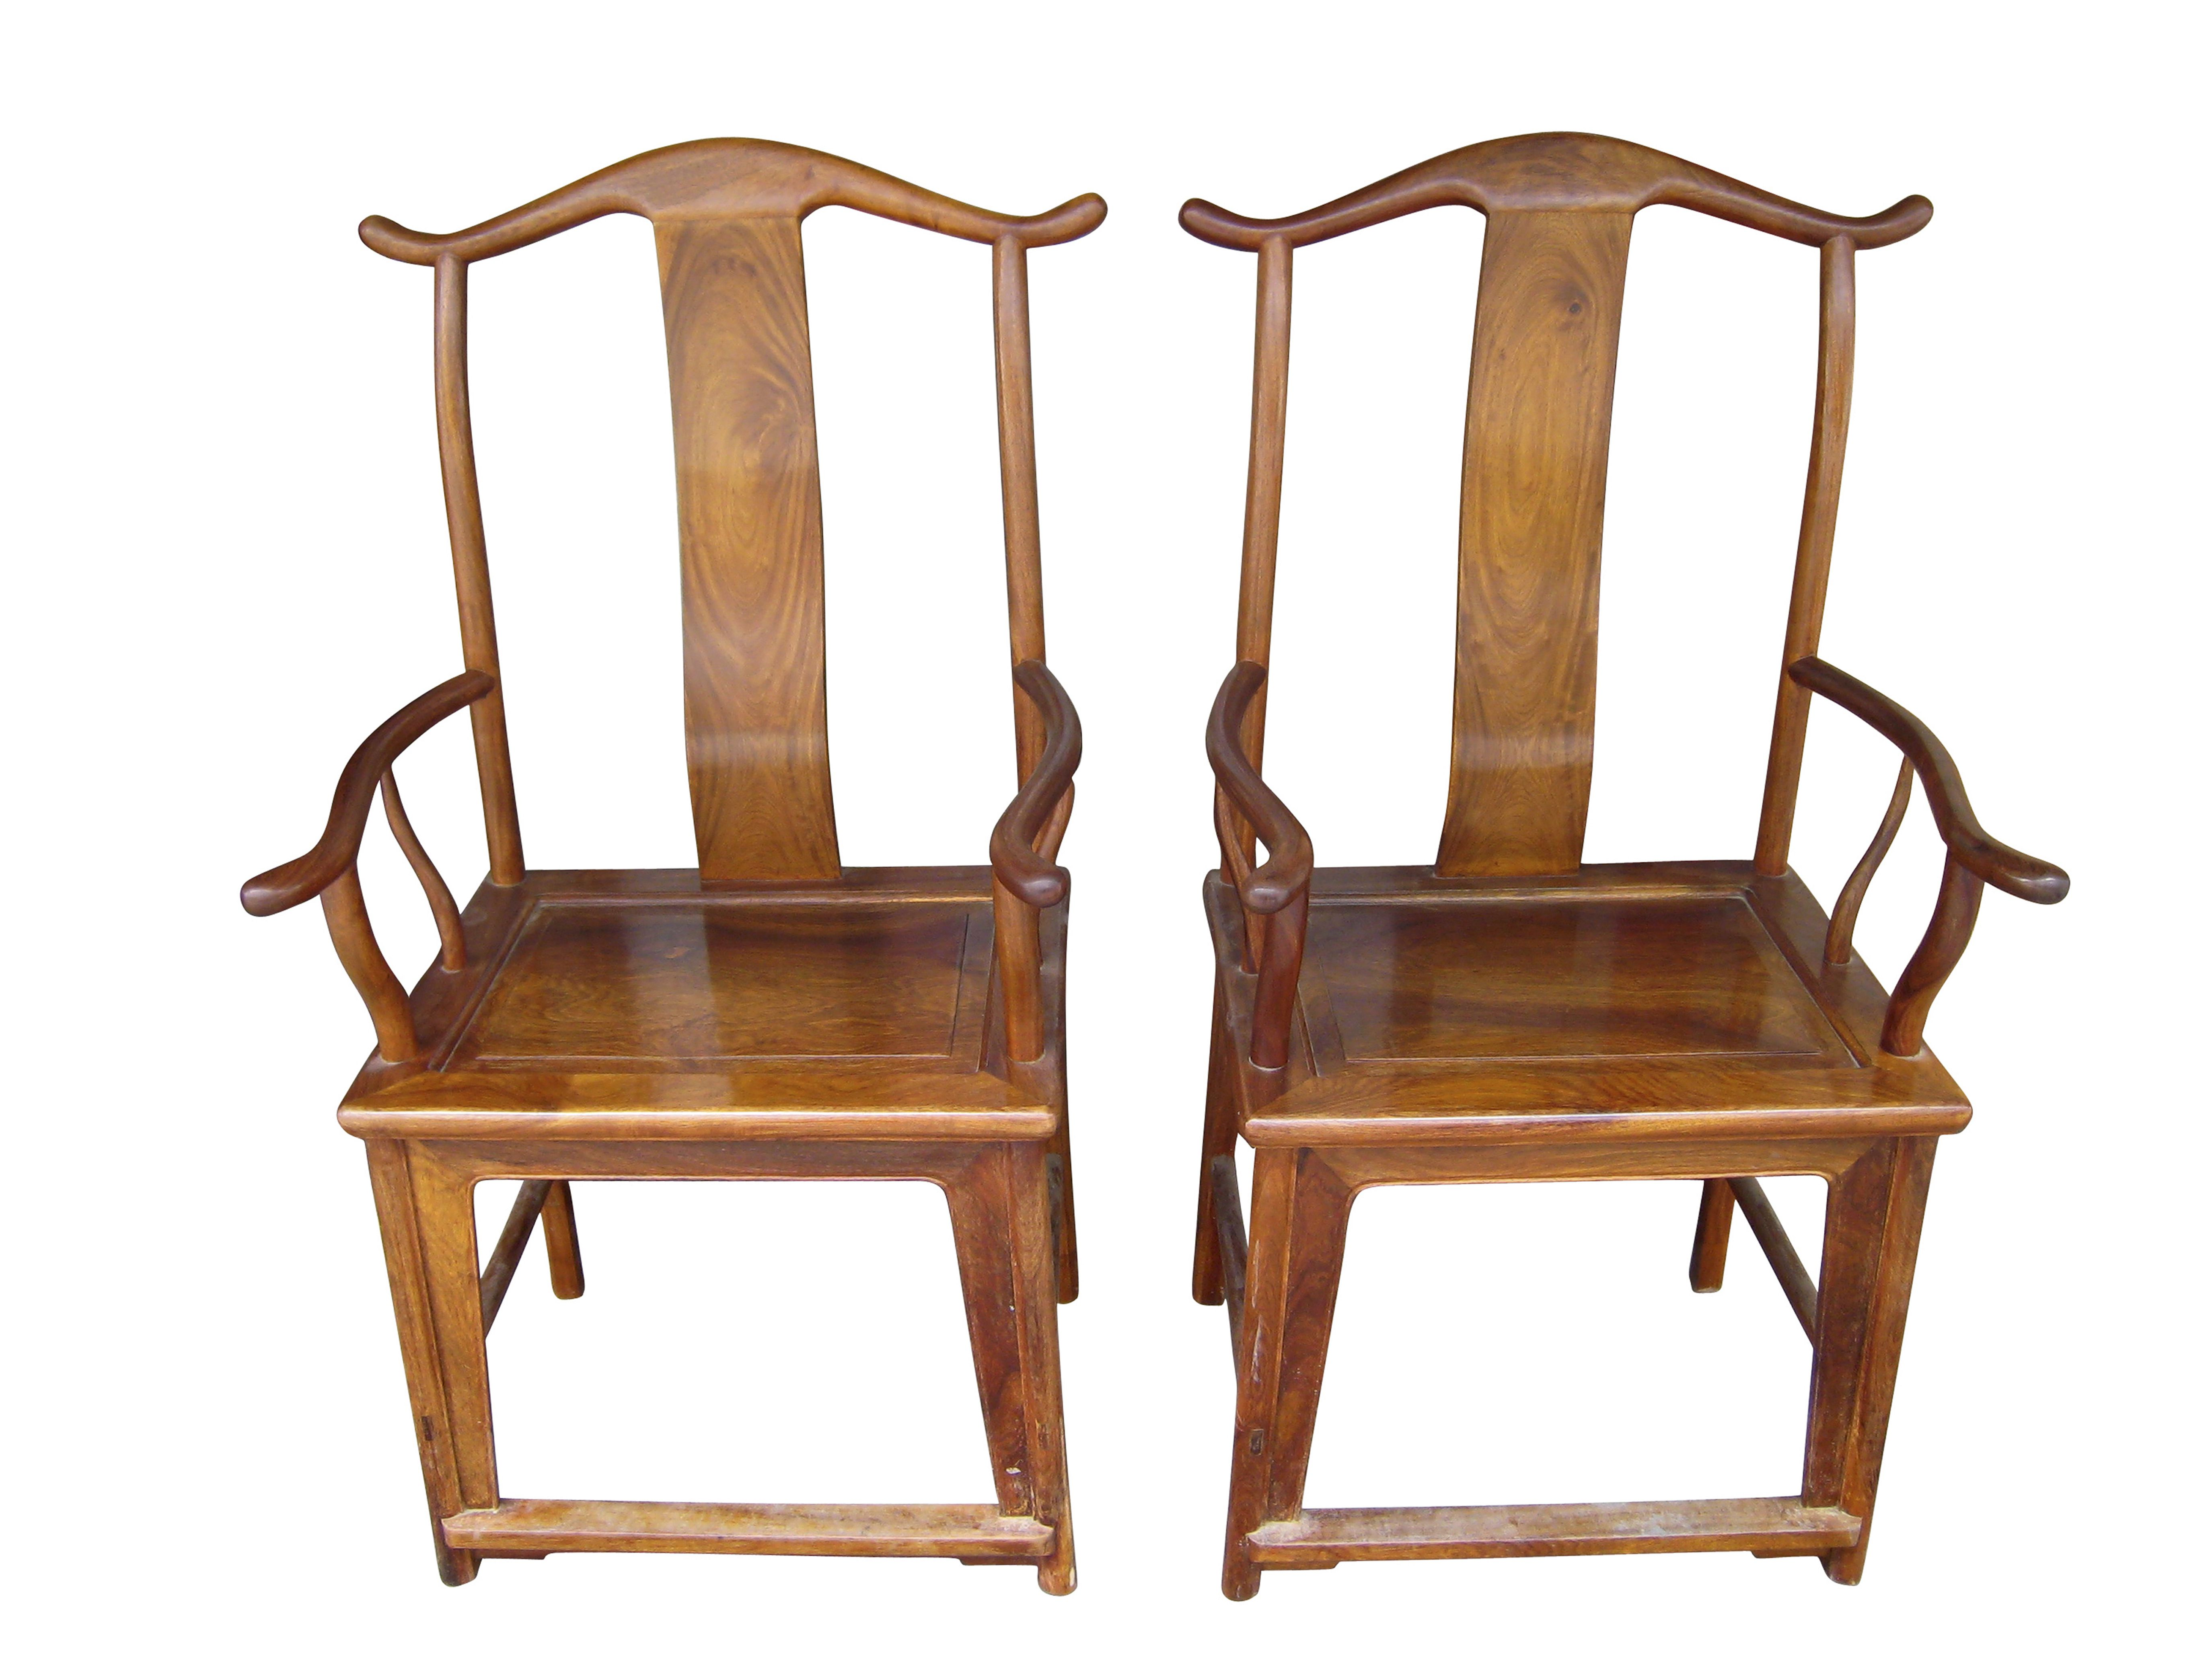 close-up of Chinese yoke-back traditional armed chairs